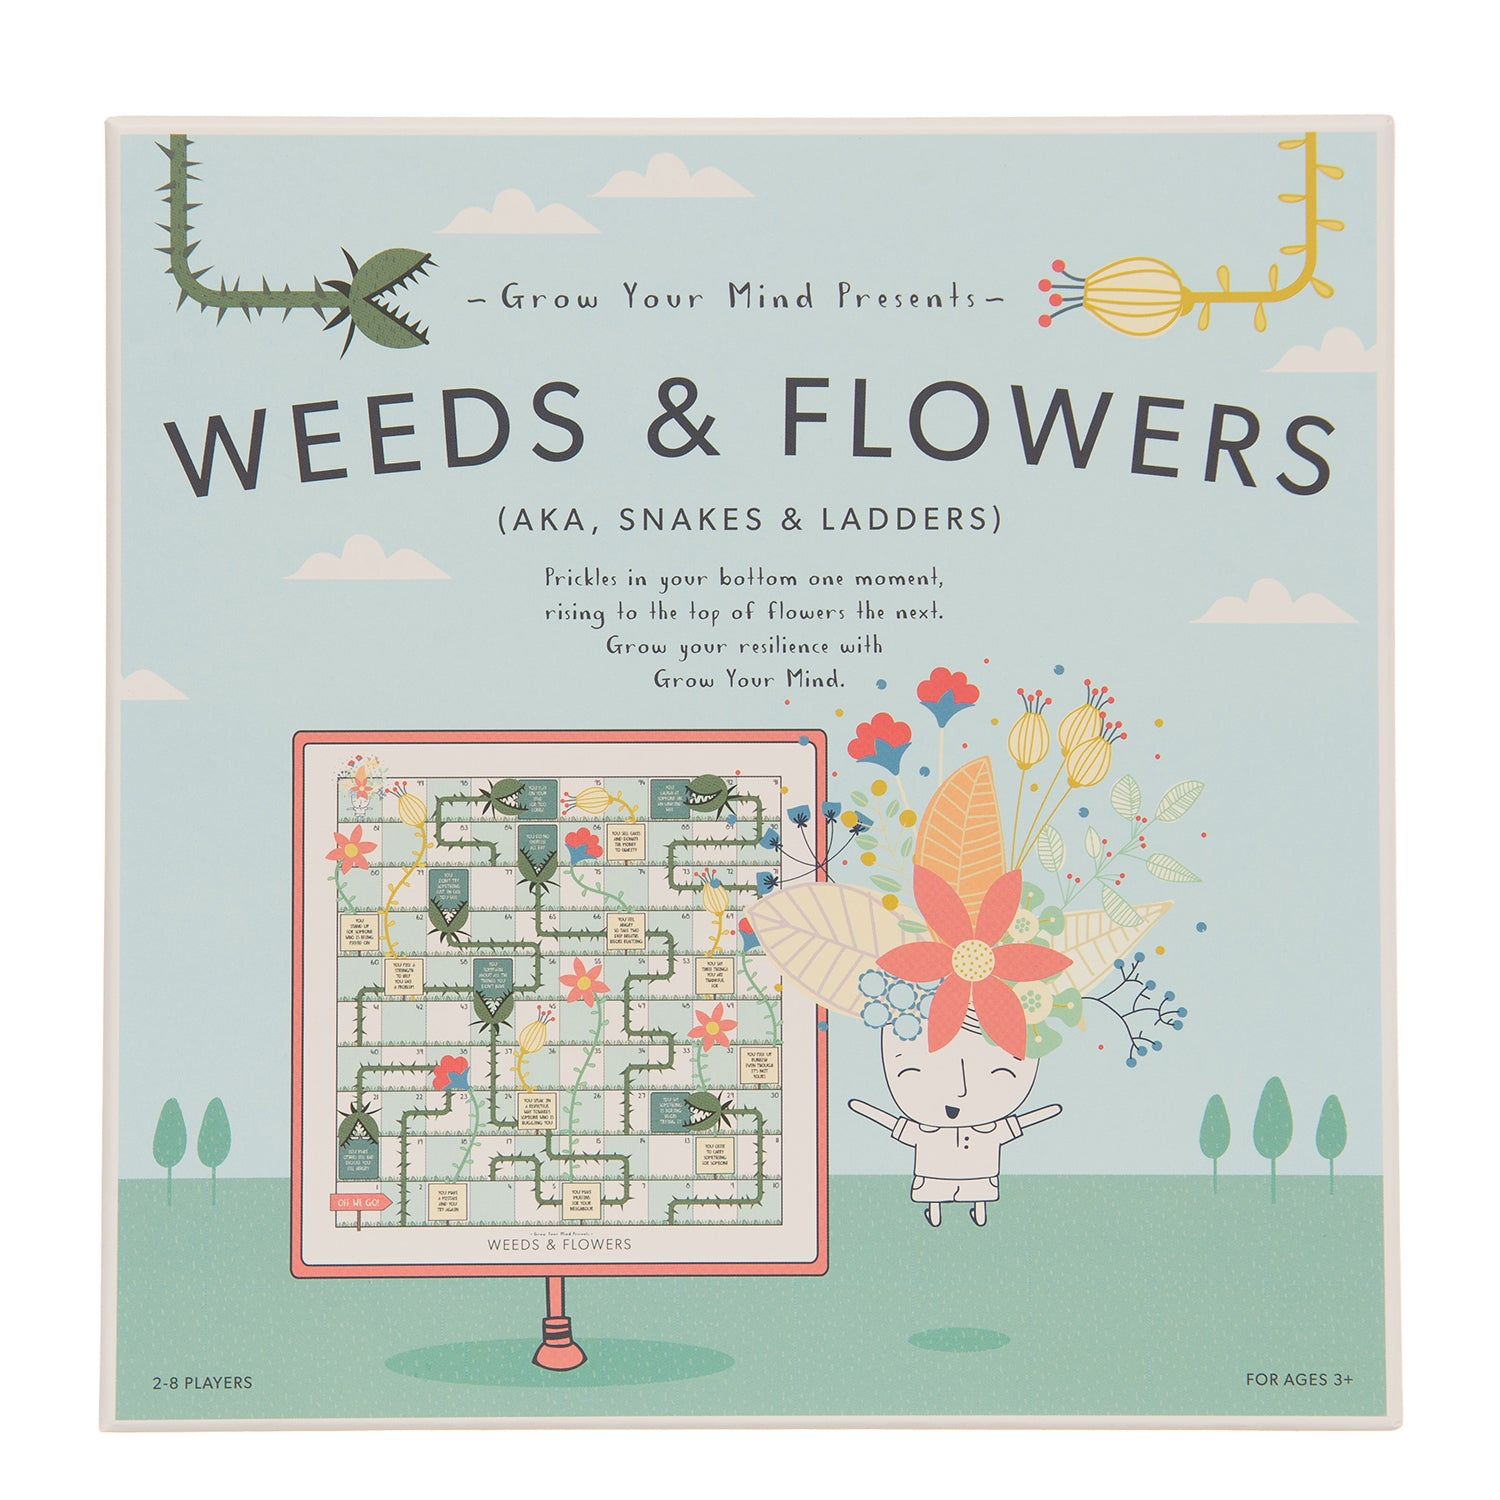 Weeds & Flowers board game